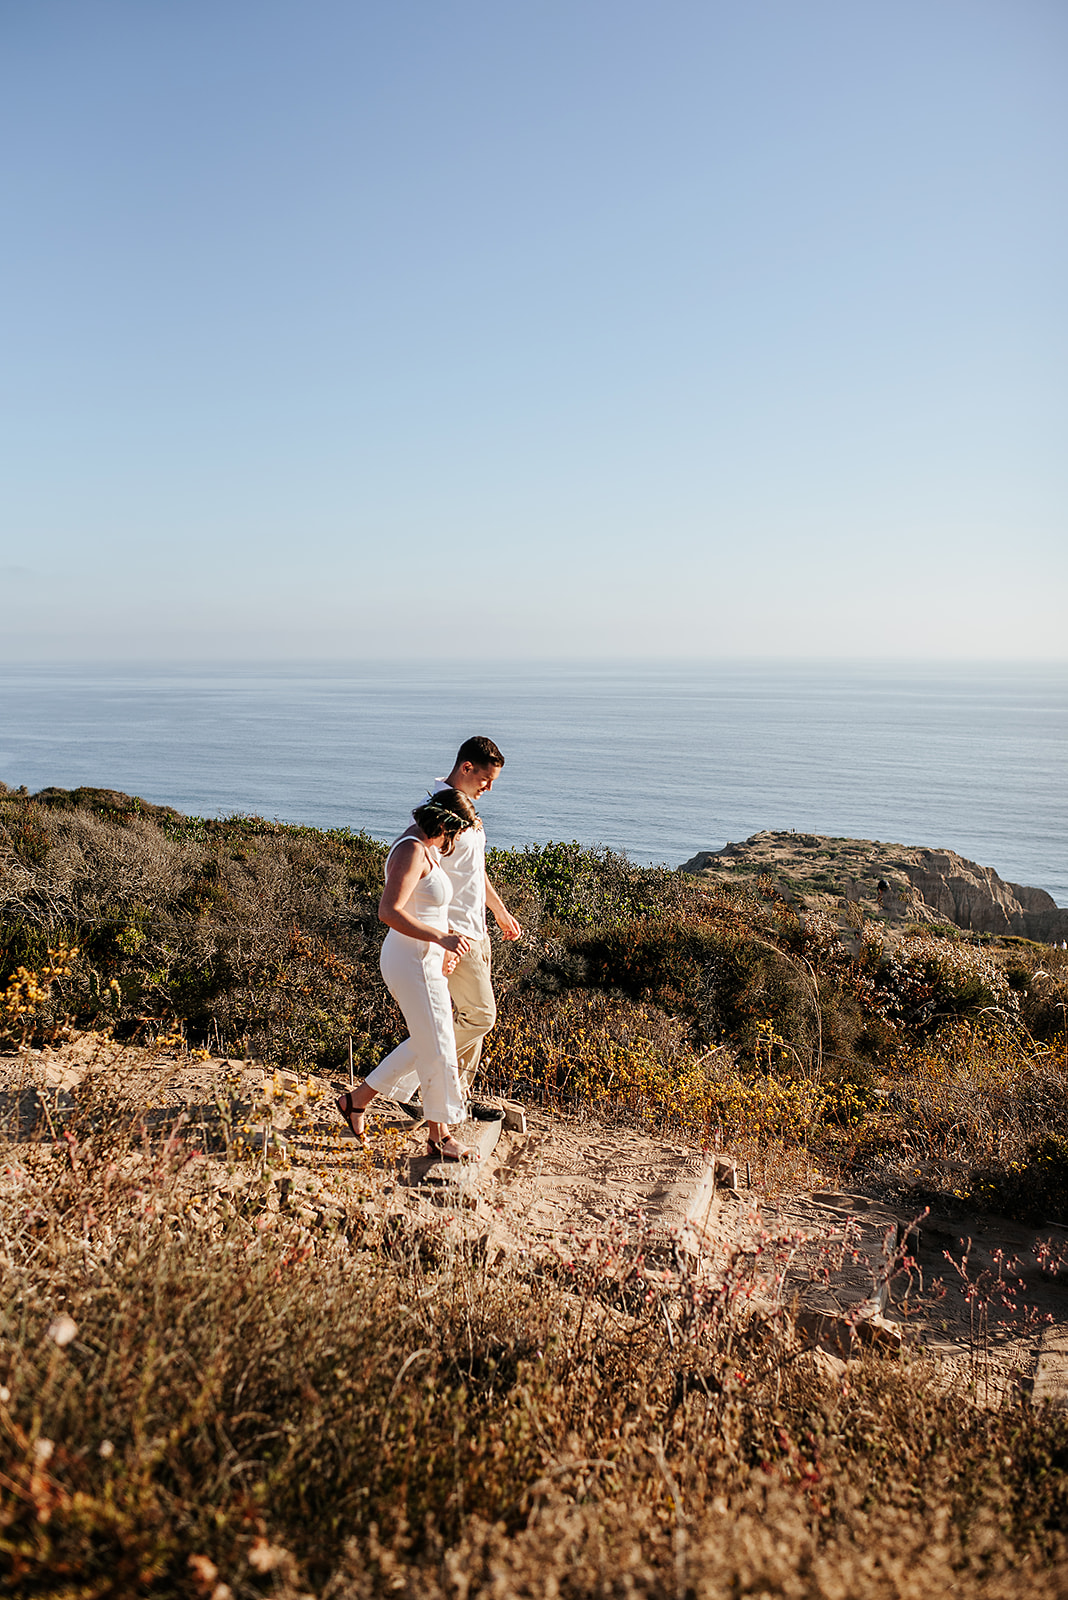 SoCal_Standard_-_San_Diego_Engagement_Photographer_-_Modern_Candid_Destination_Photographer_-_Engagement_Session_at_Torrey_Pines_San_Diego_California_-_Grace_and_Robert-39.jpg